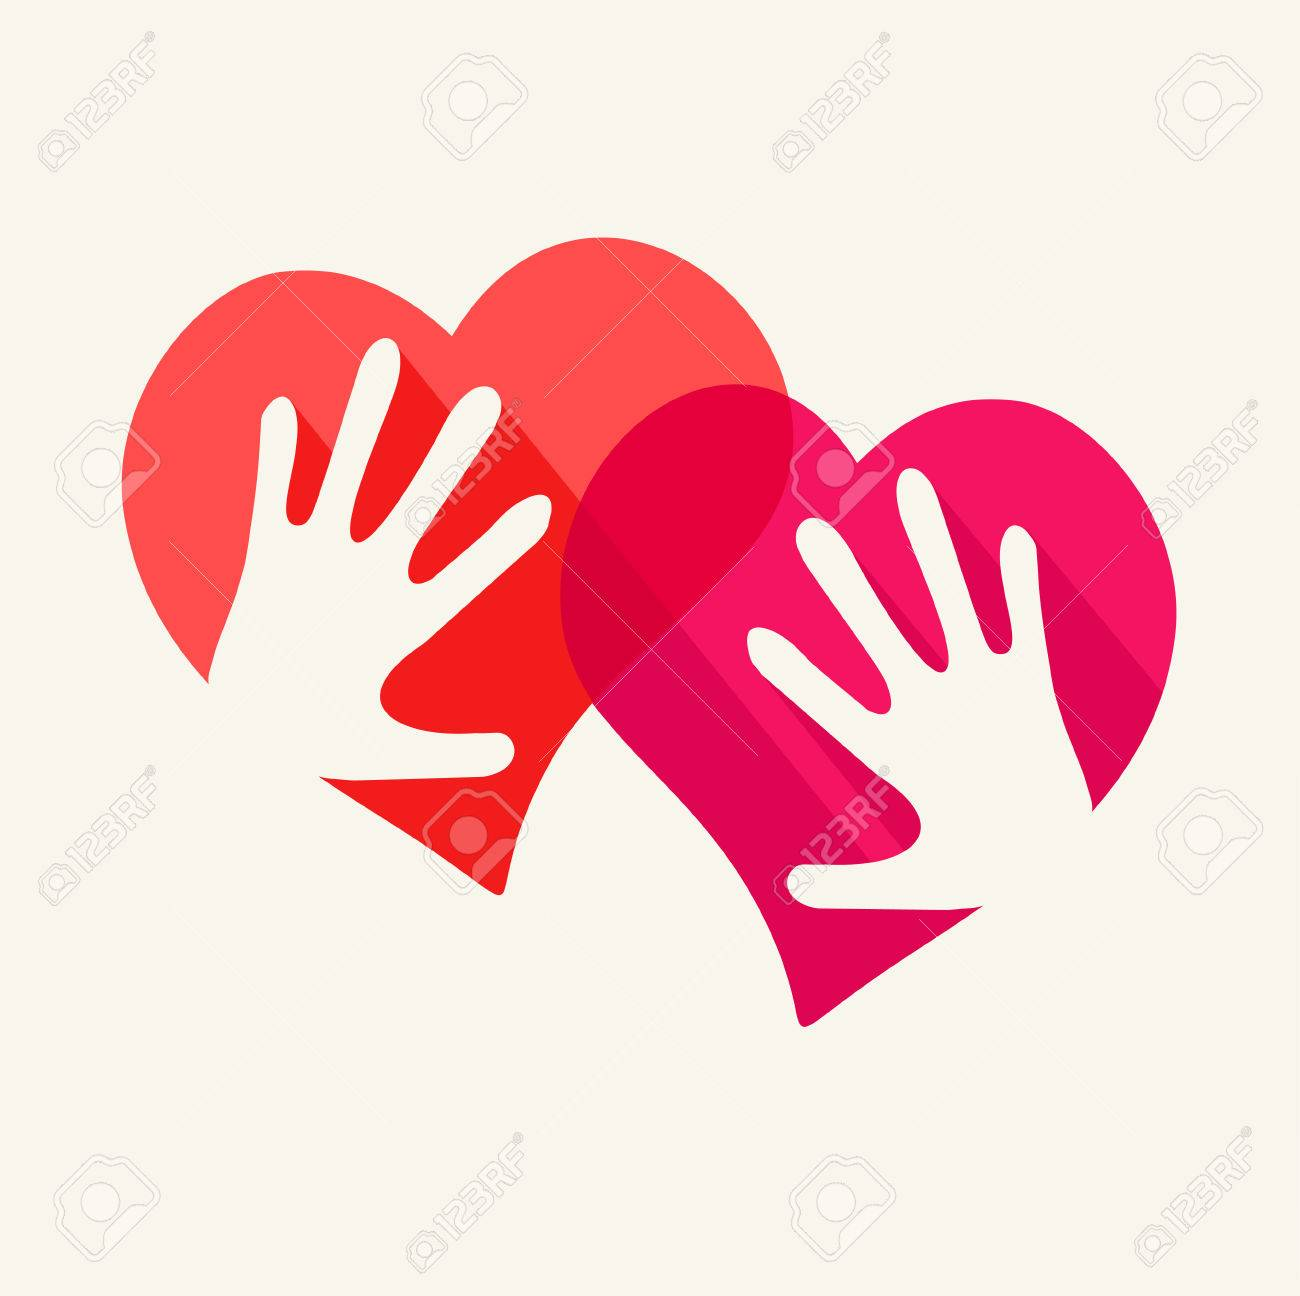 Two Hearts And Two Hands Symbol Of Love Royalty Free Cliparts